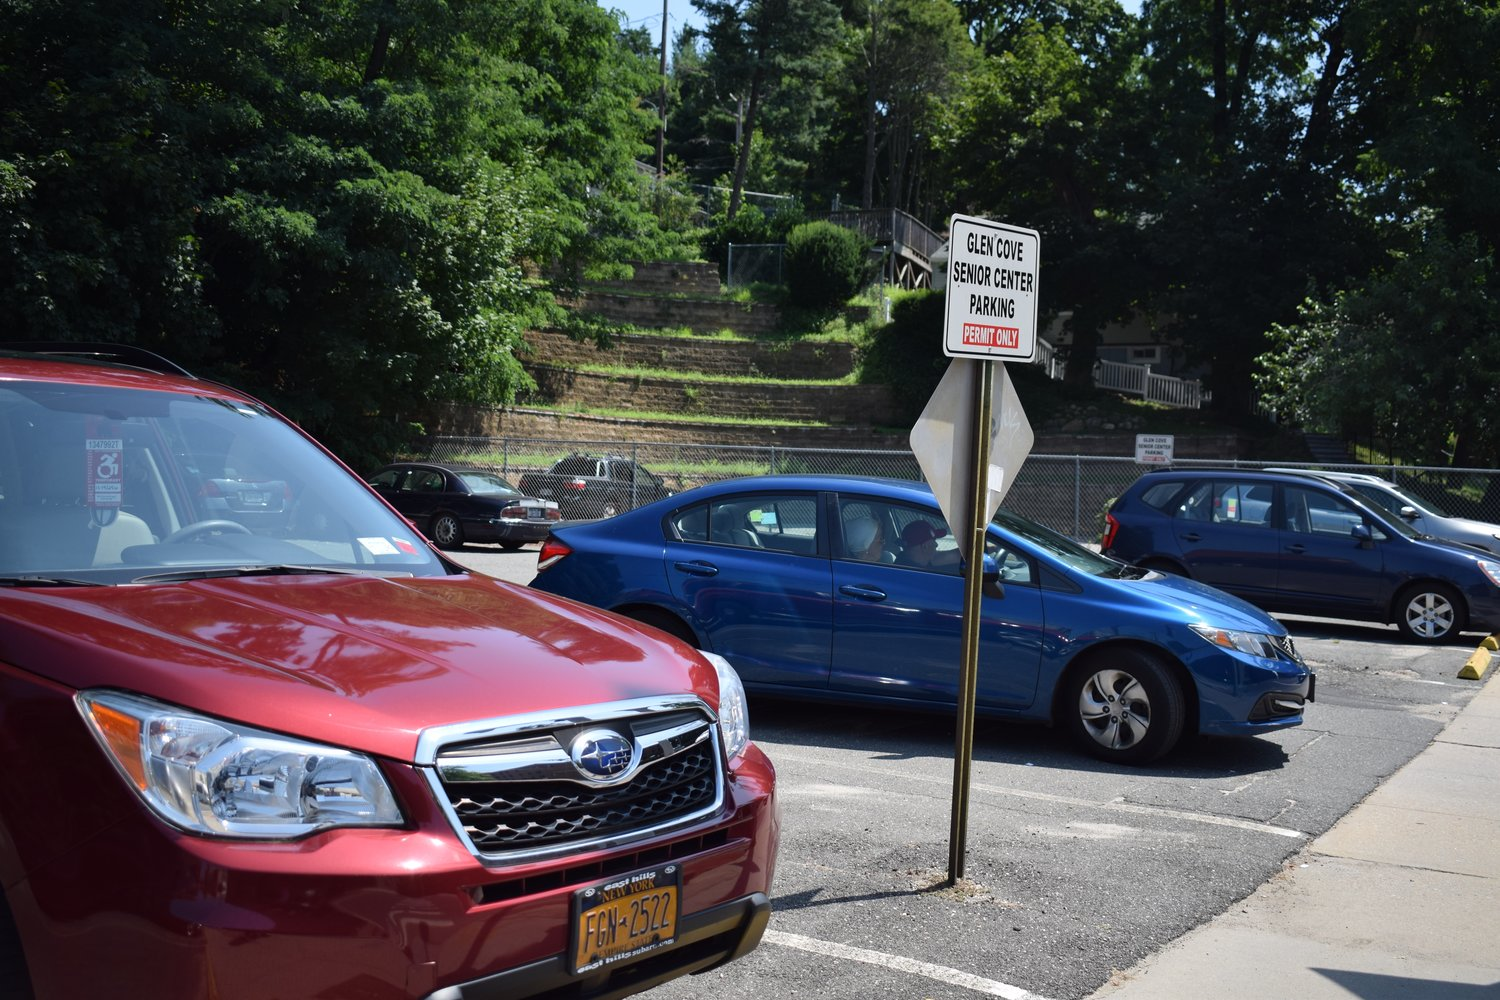 The City of Glen Cove filed an appeal on July 23 to continue to lease 18 parking spaces for the senior center.